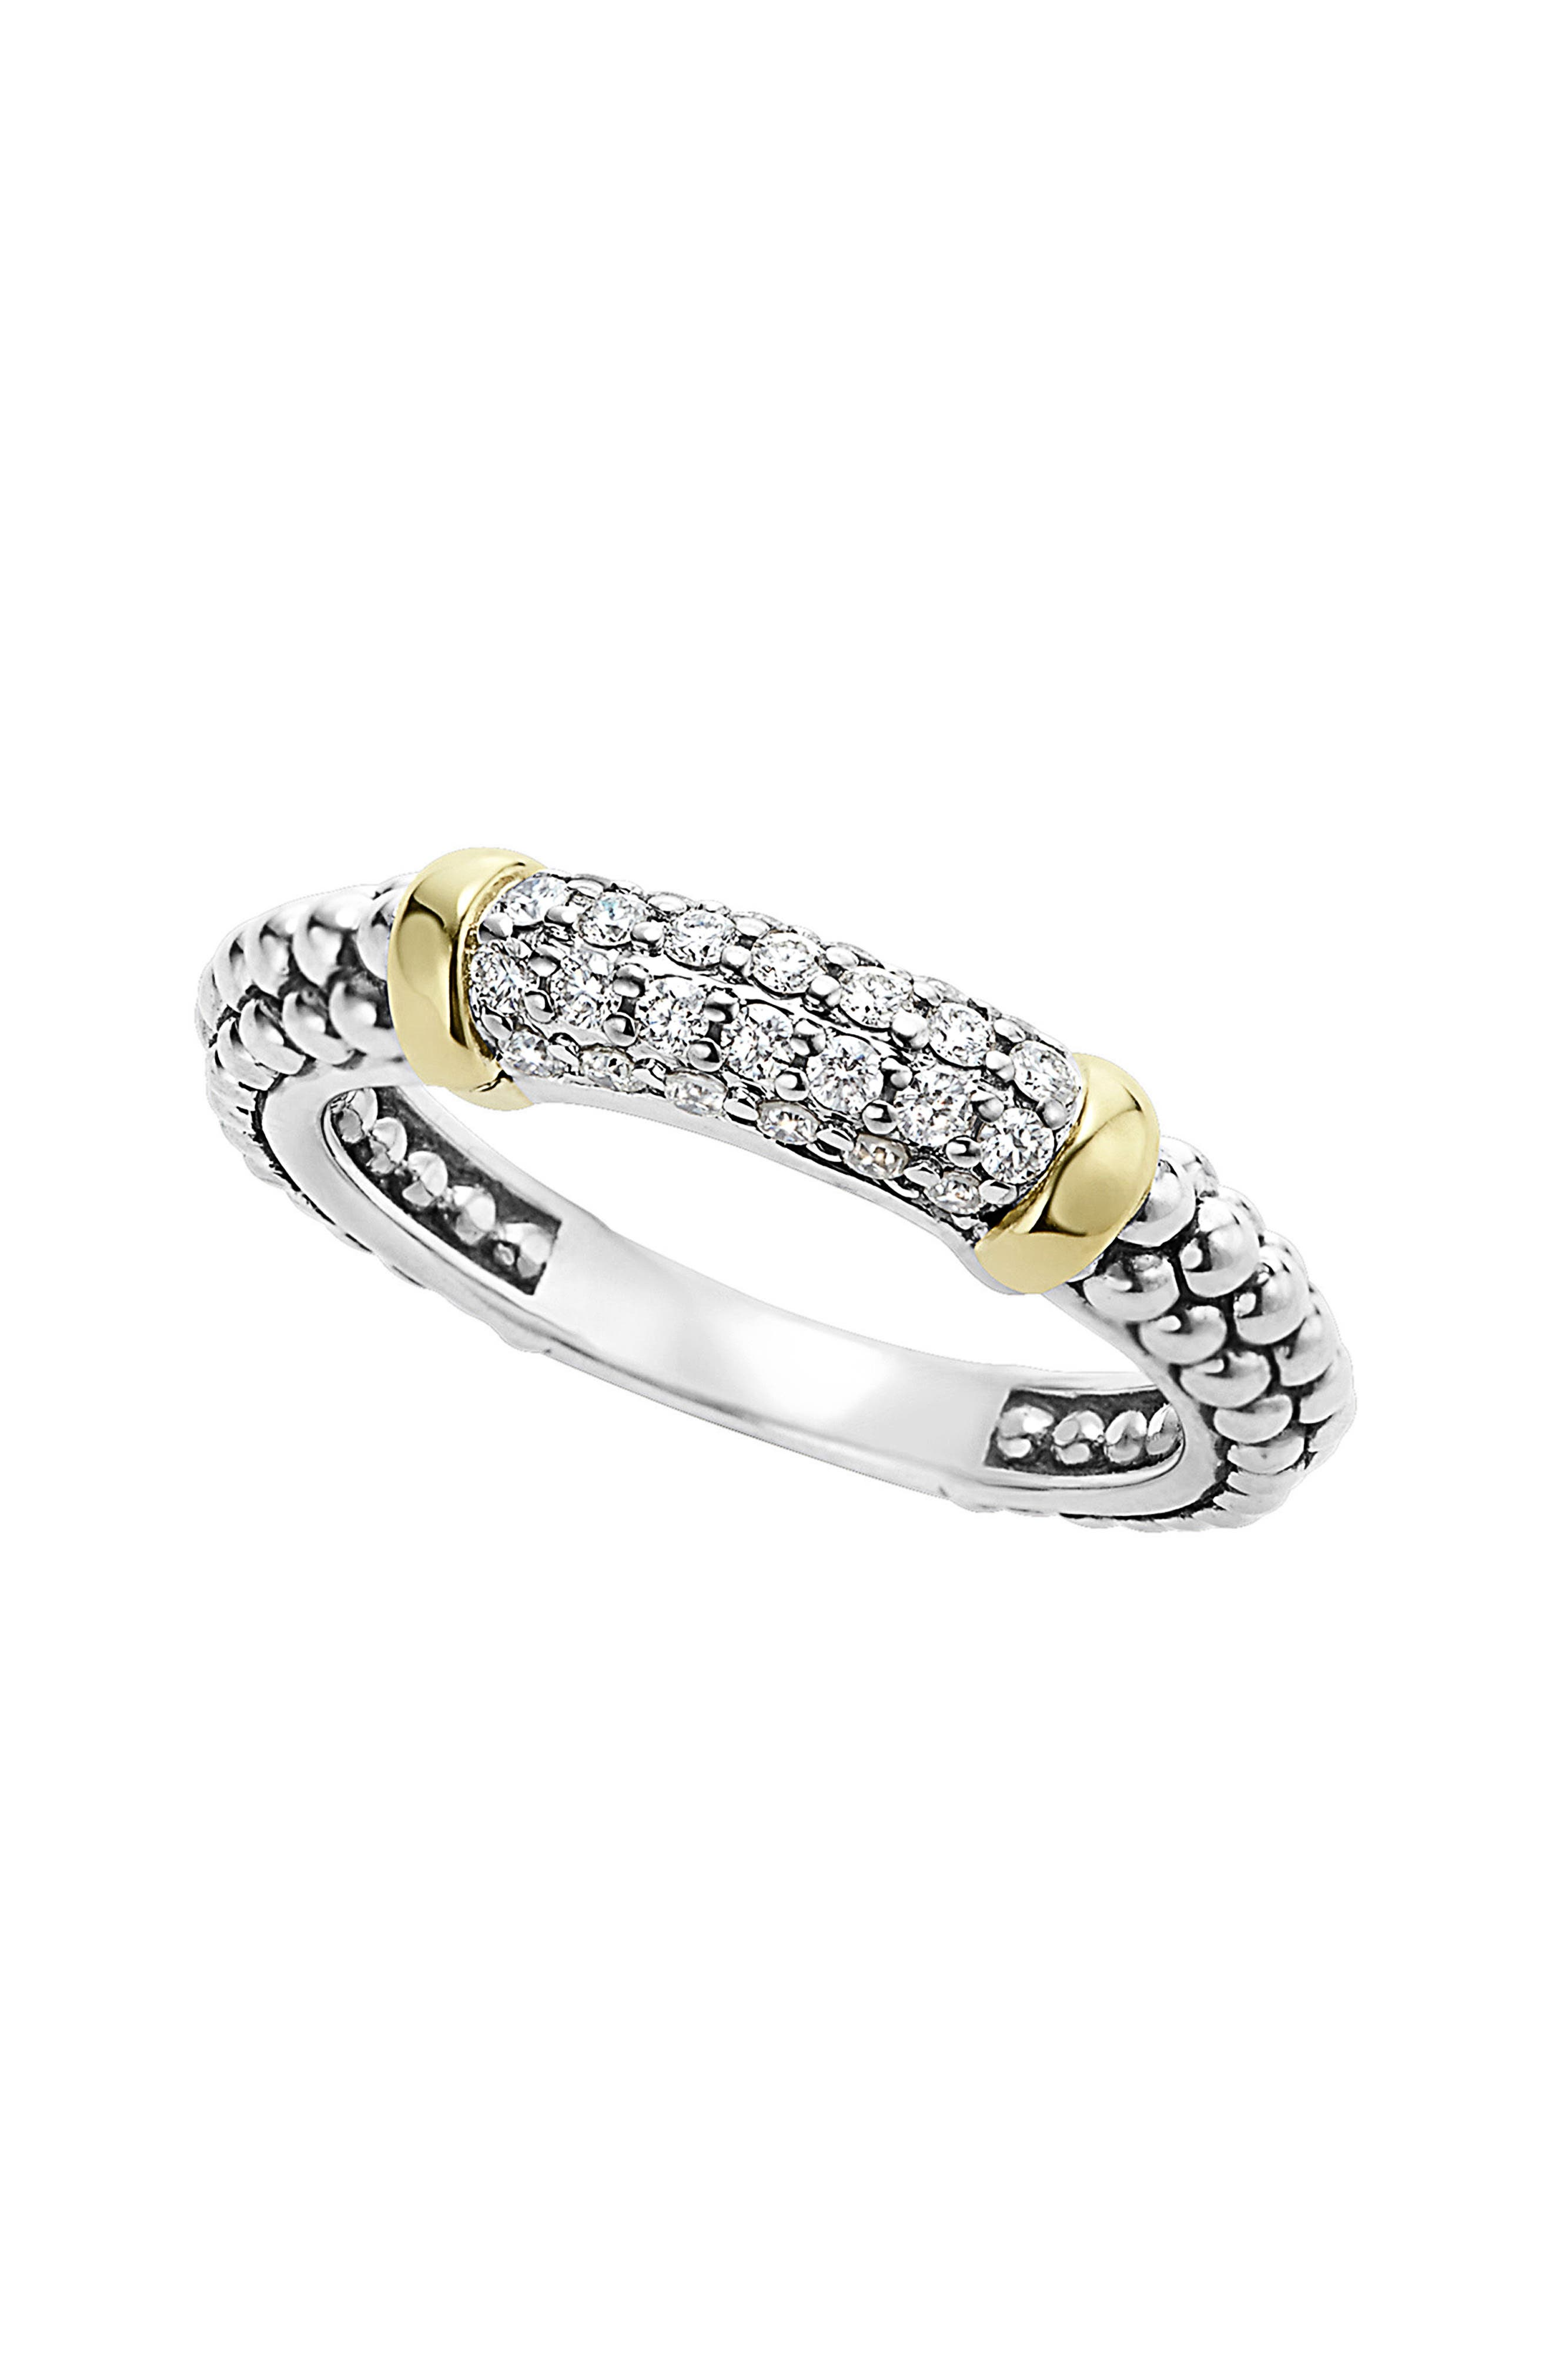 LAGOS 'Caviar' Diamond Band Ring